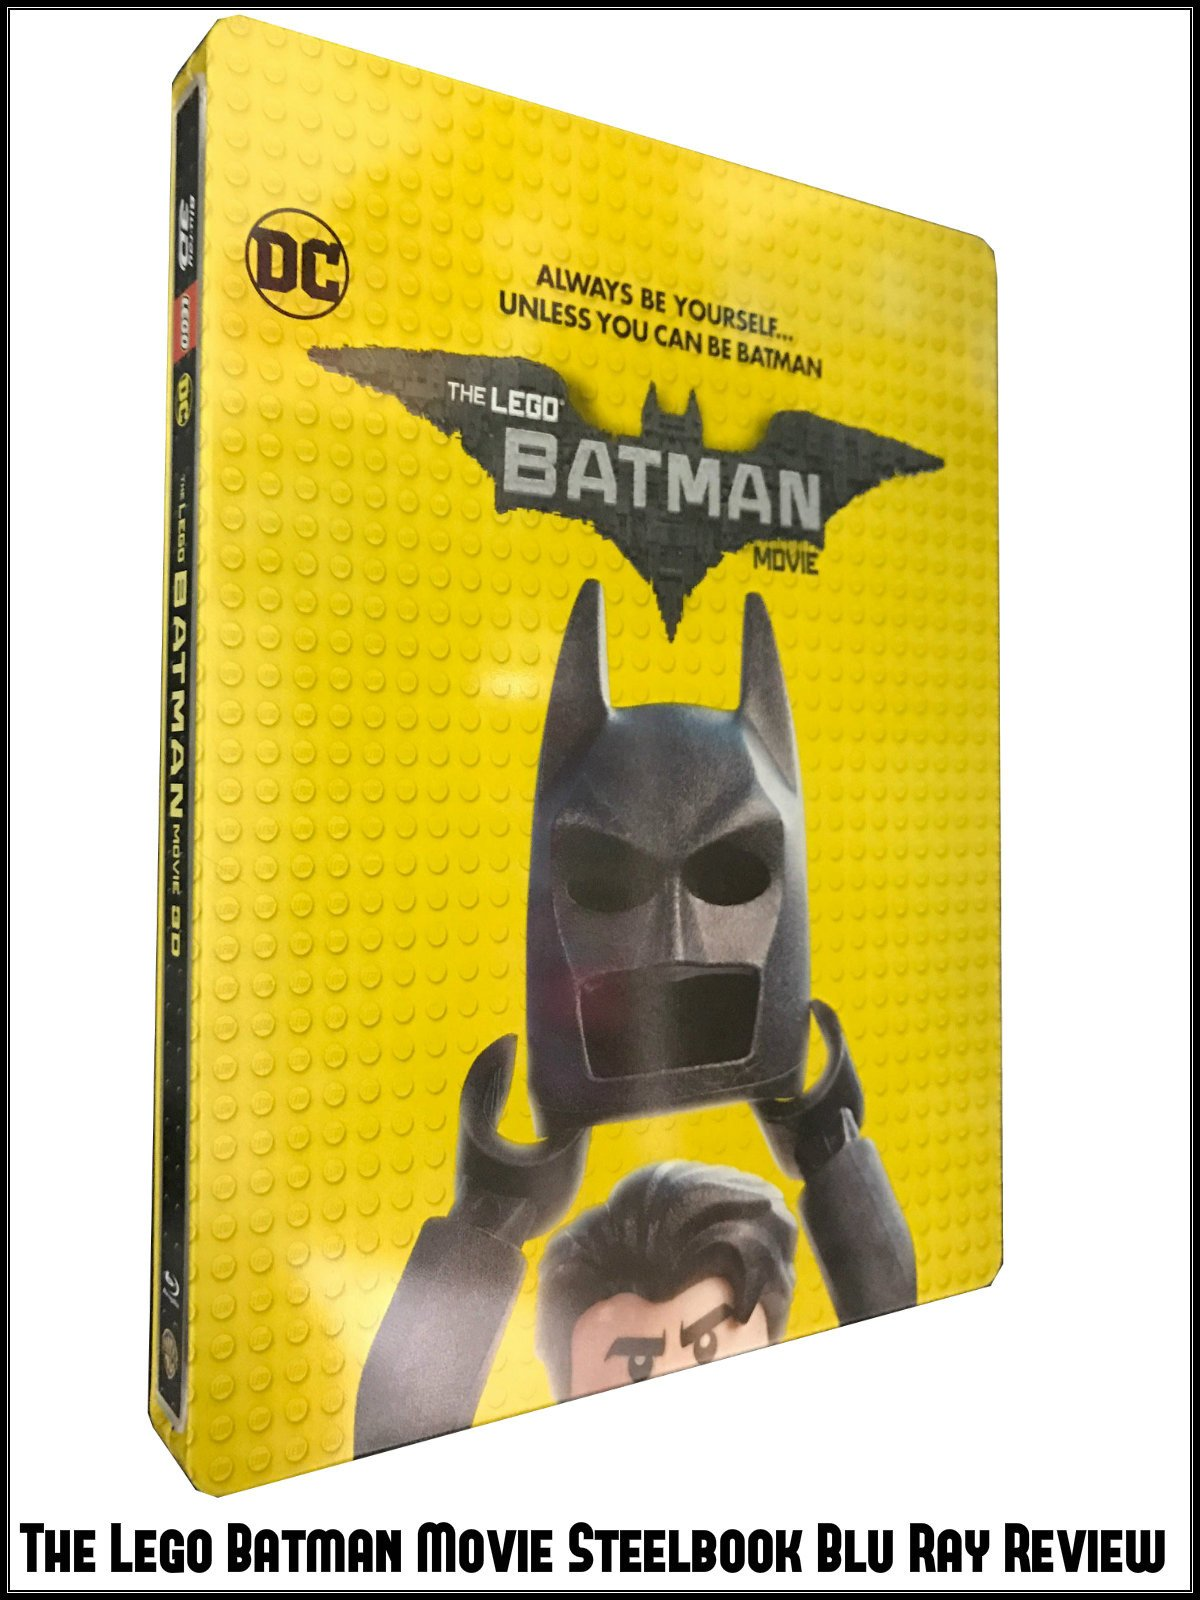 Review: The Lego Batman Movie Steelbook Blu Ray Review